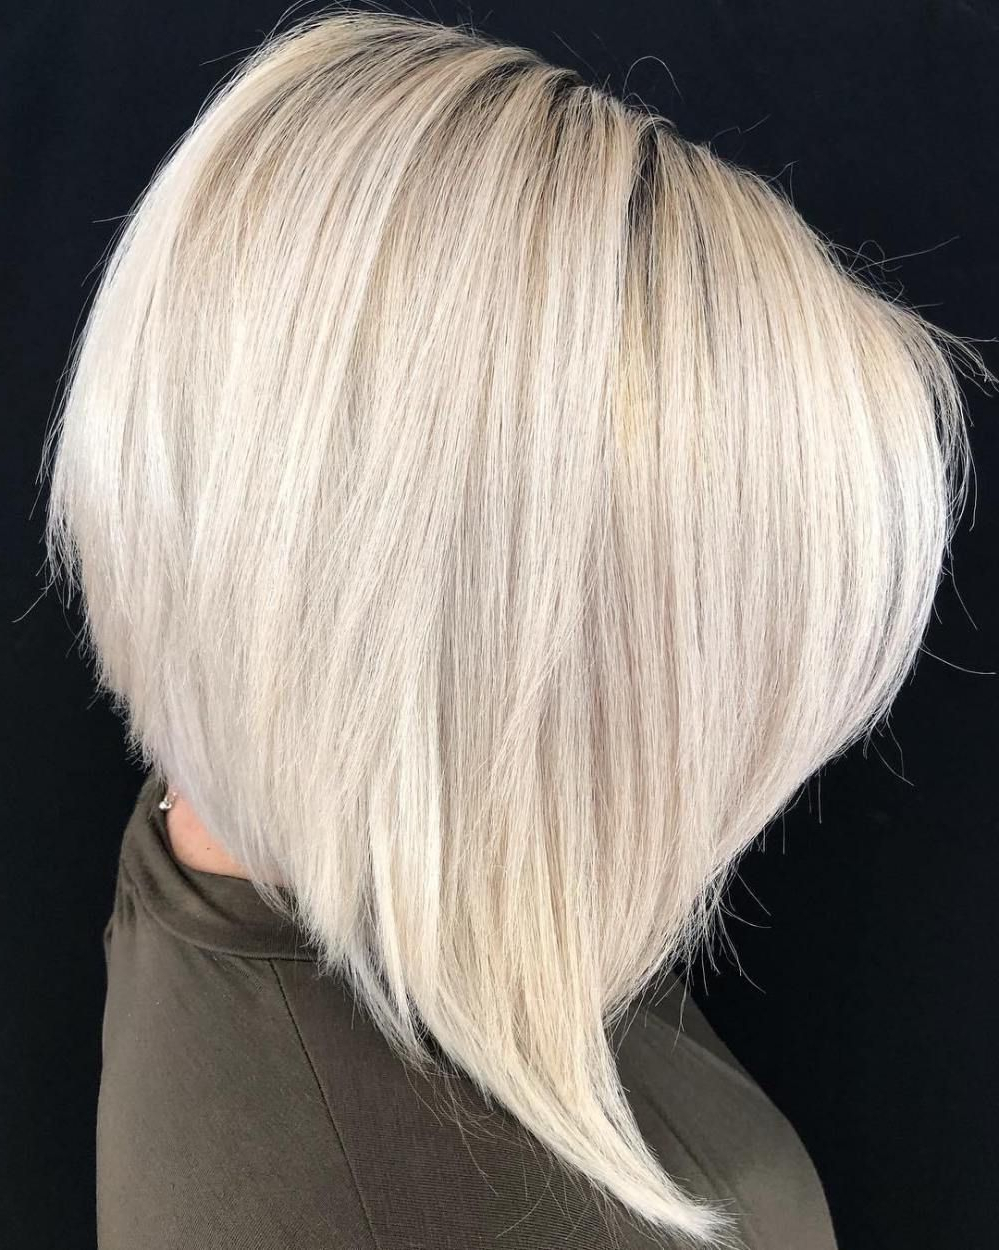 60 Layered Bob Styles: Modern Haircuts With Layers For Any With Steeply Angled Razored Asymmetrical Bob Hairstyles (Gallery 13 of 20)